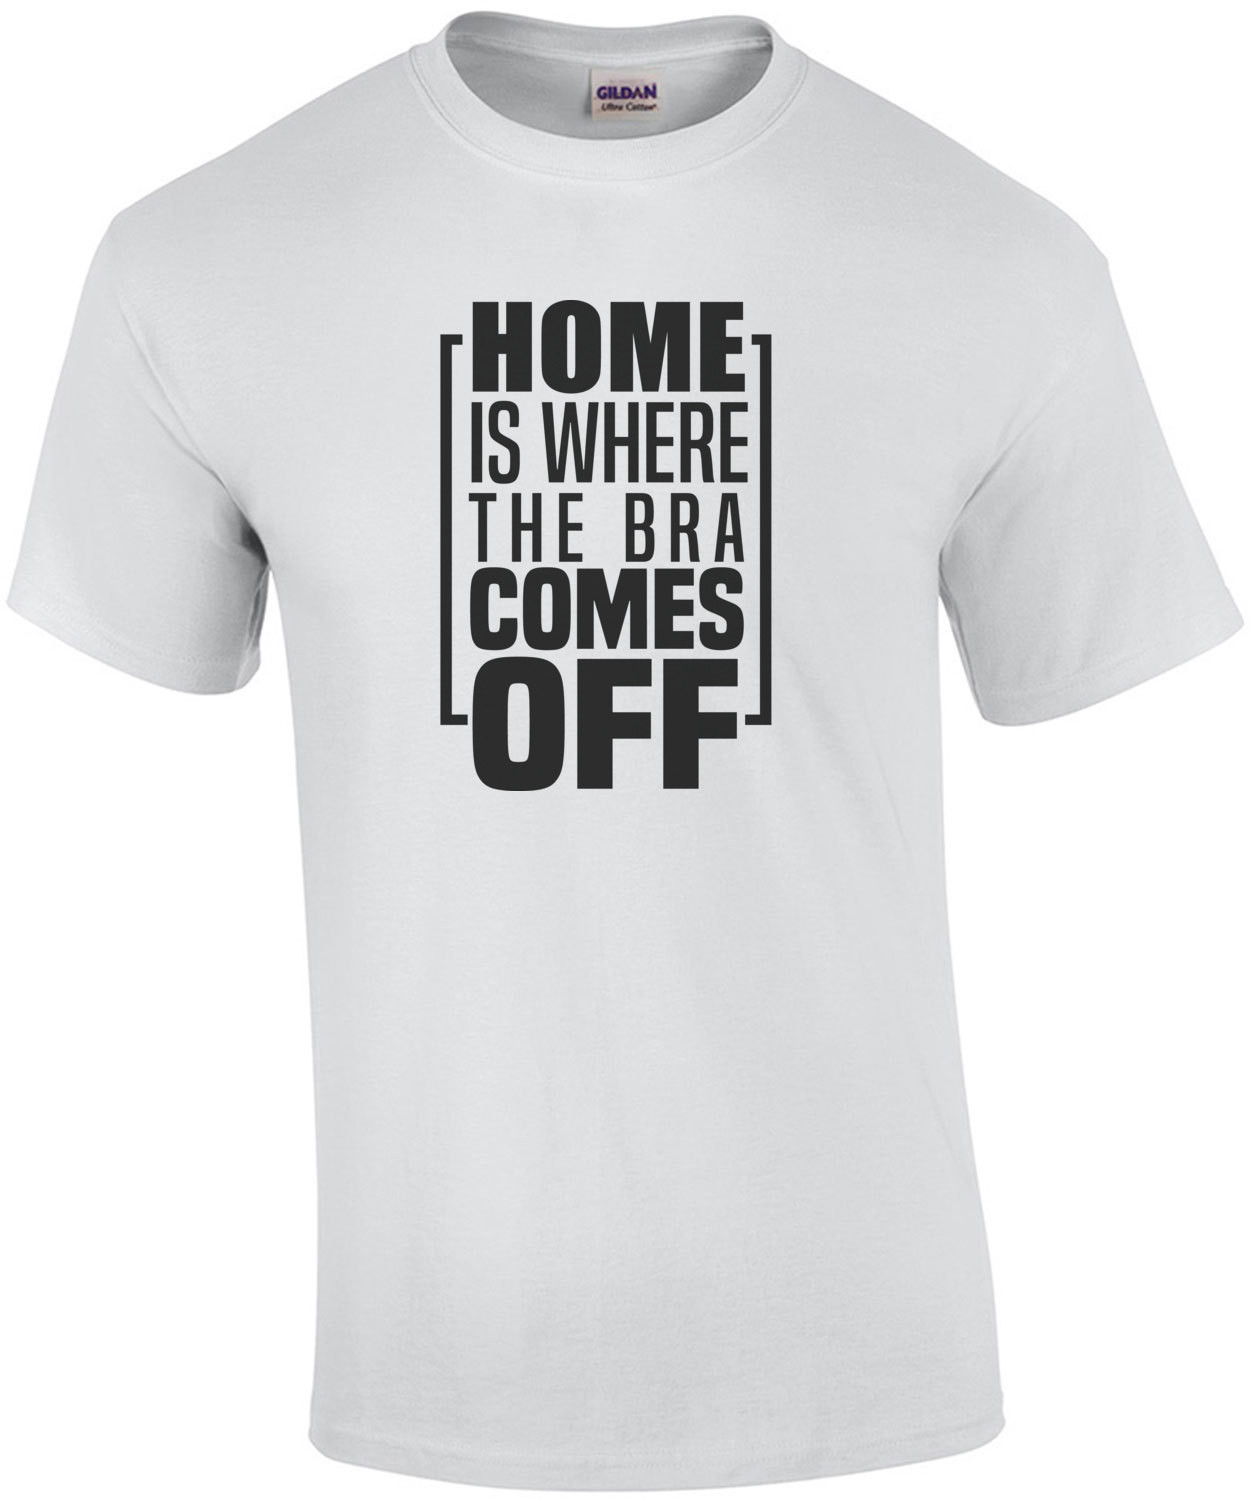 Home is where the bra comes off - funny ladies t-shirt